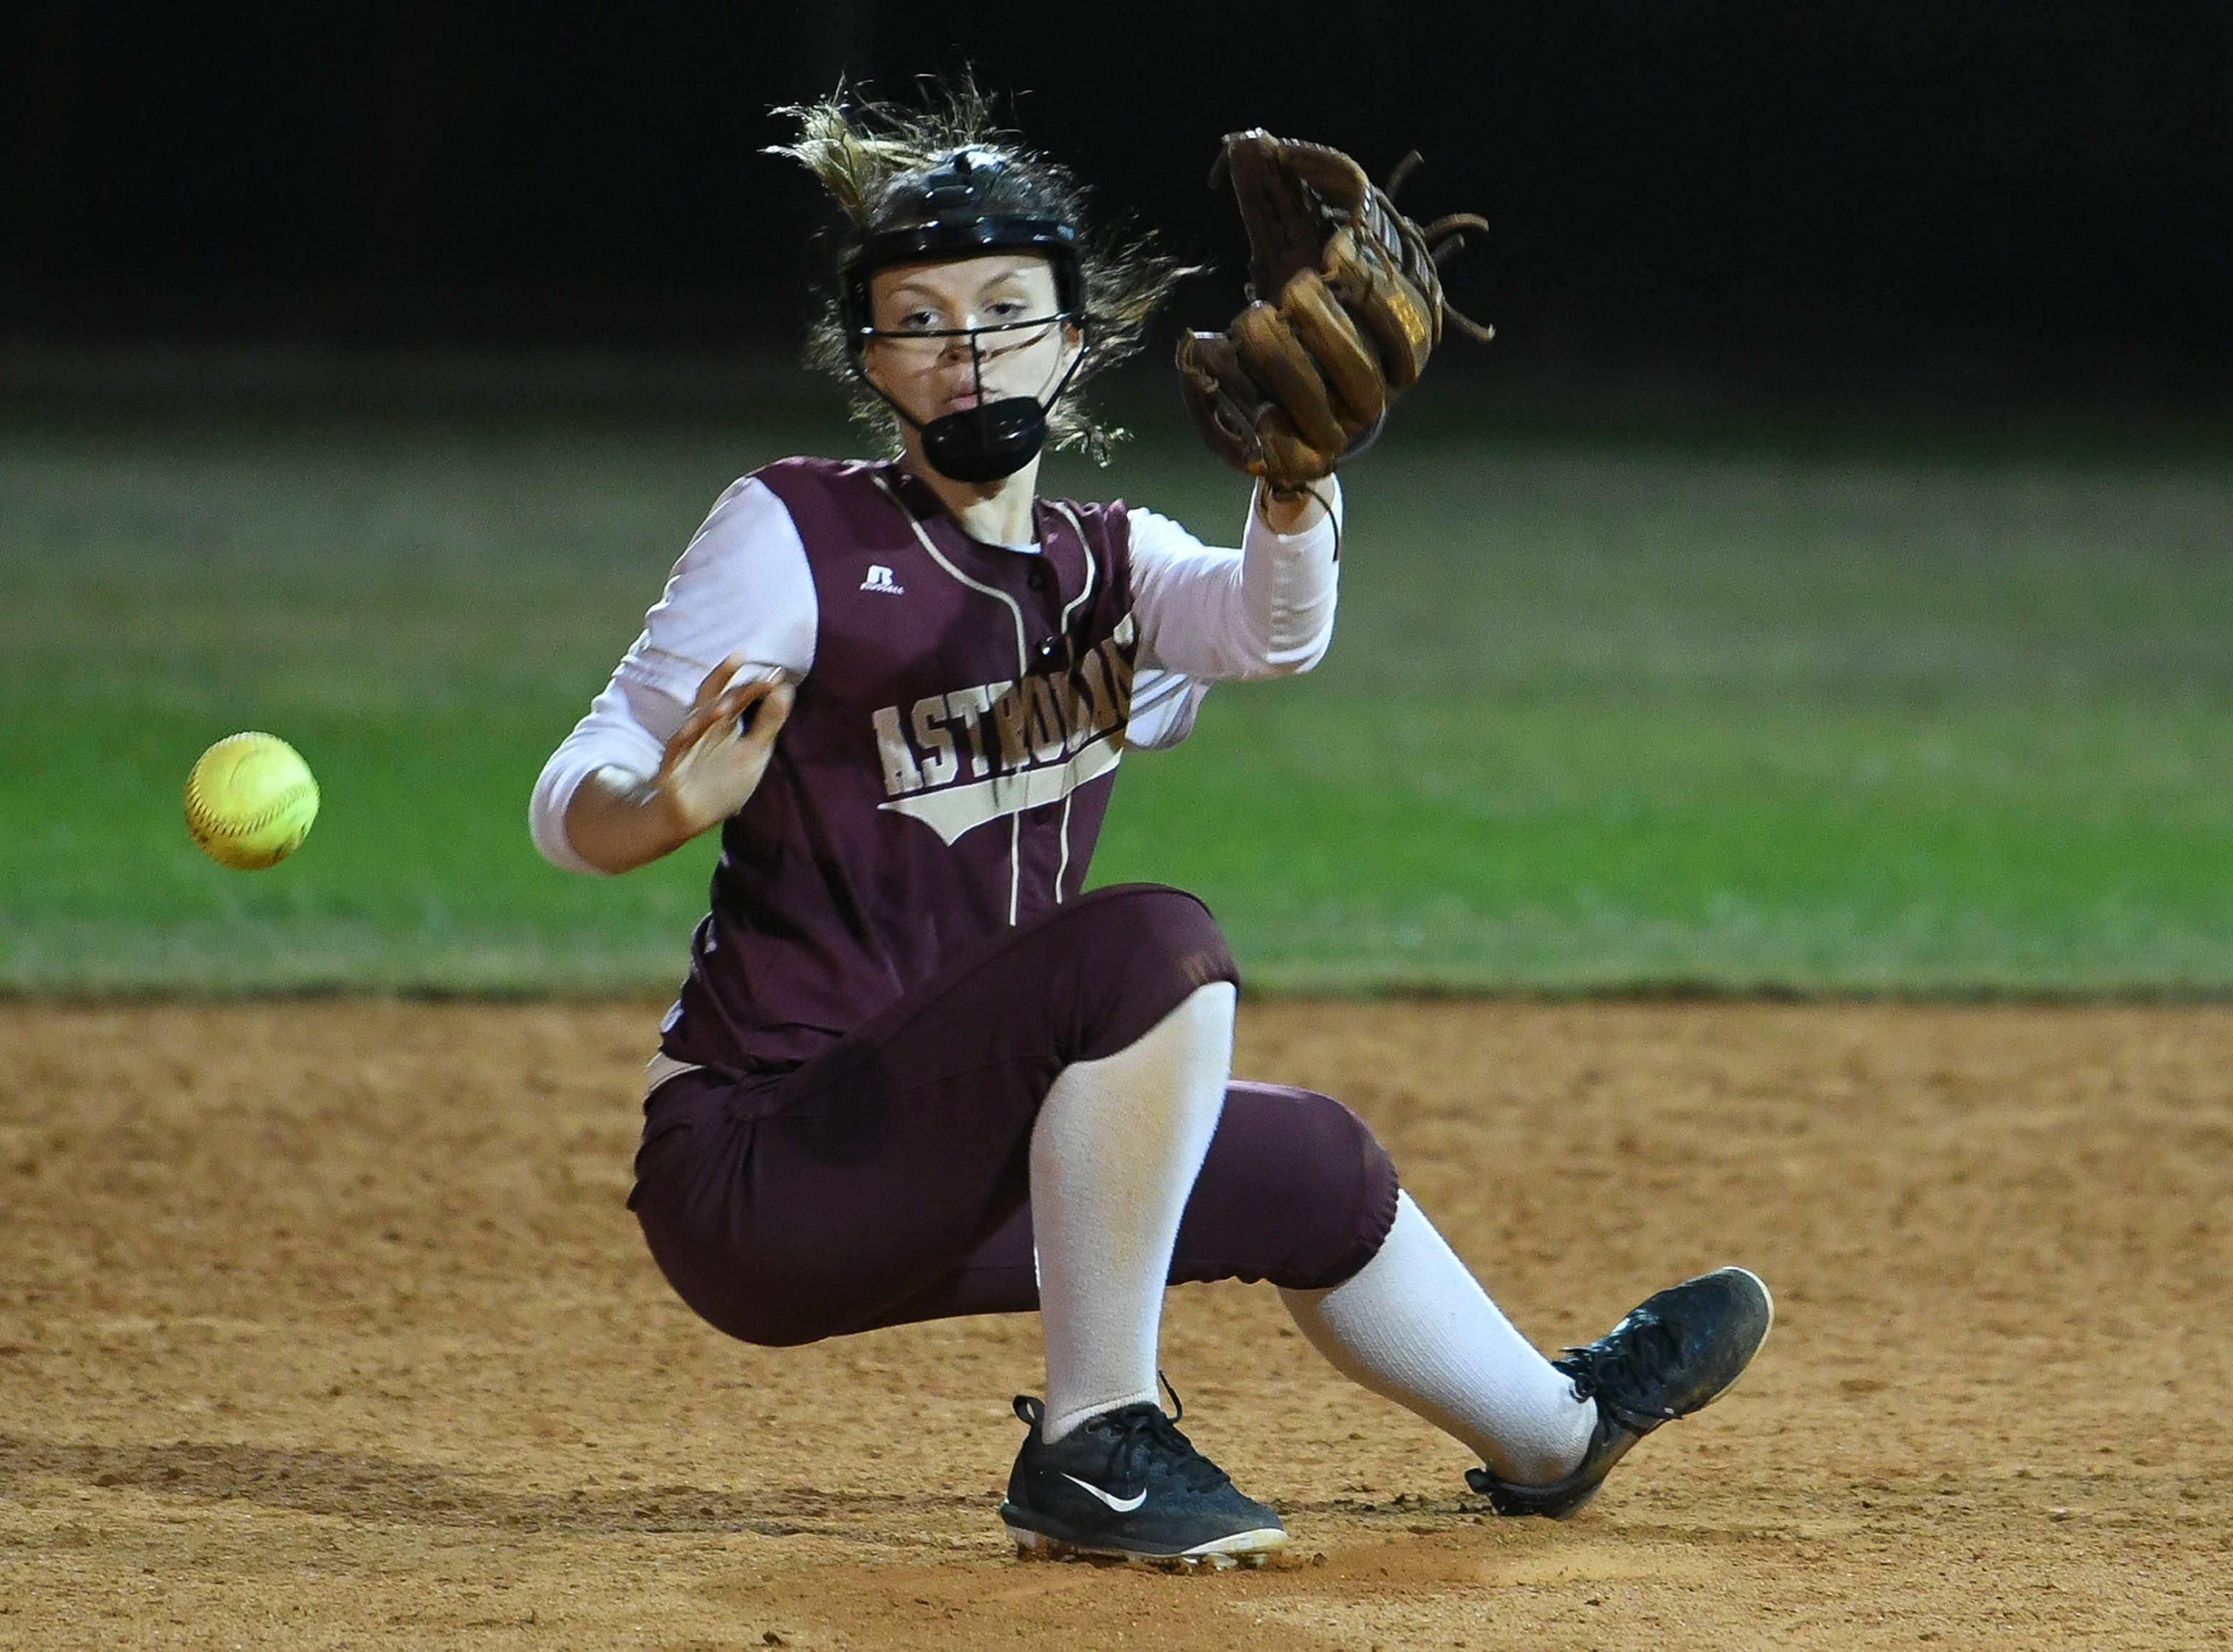 J. Lenders of Astronaut loses her footing trying to retrieve a grounder during Wednesday's game against Rockledge